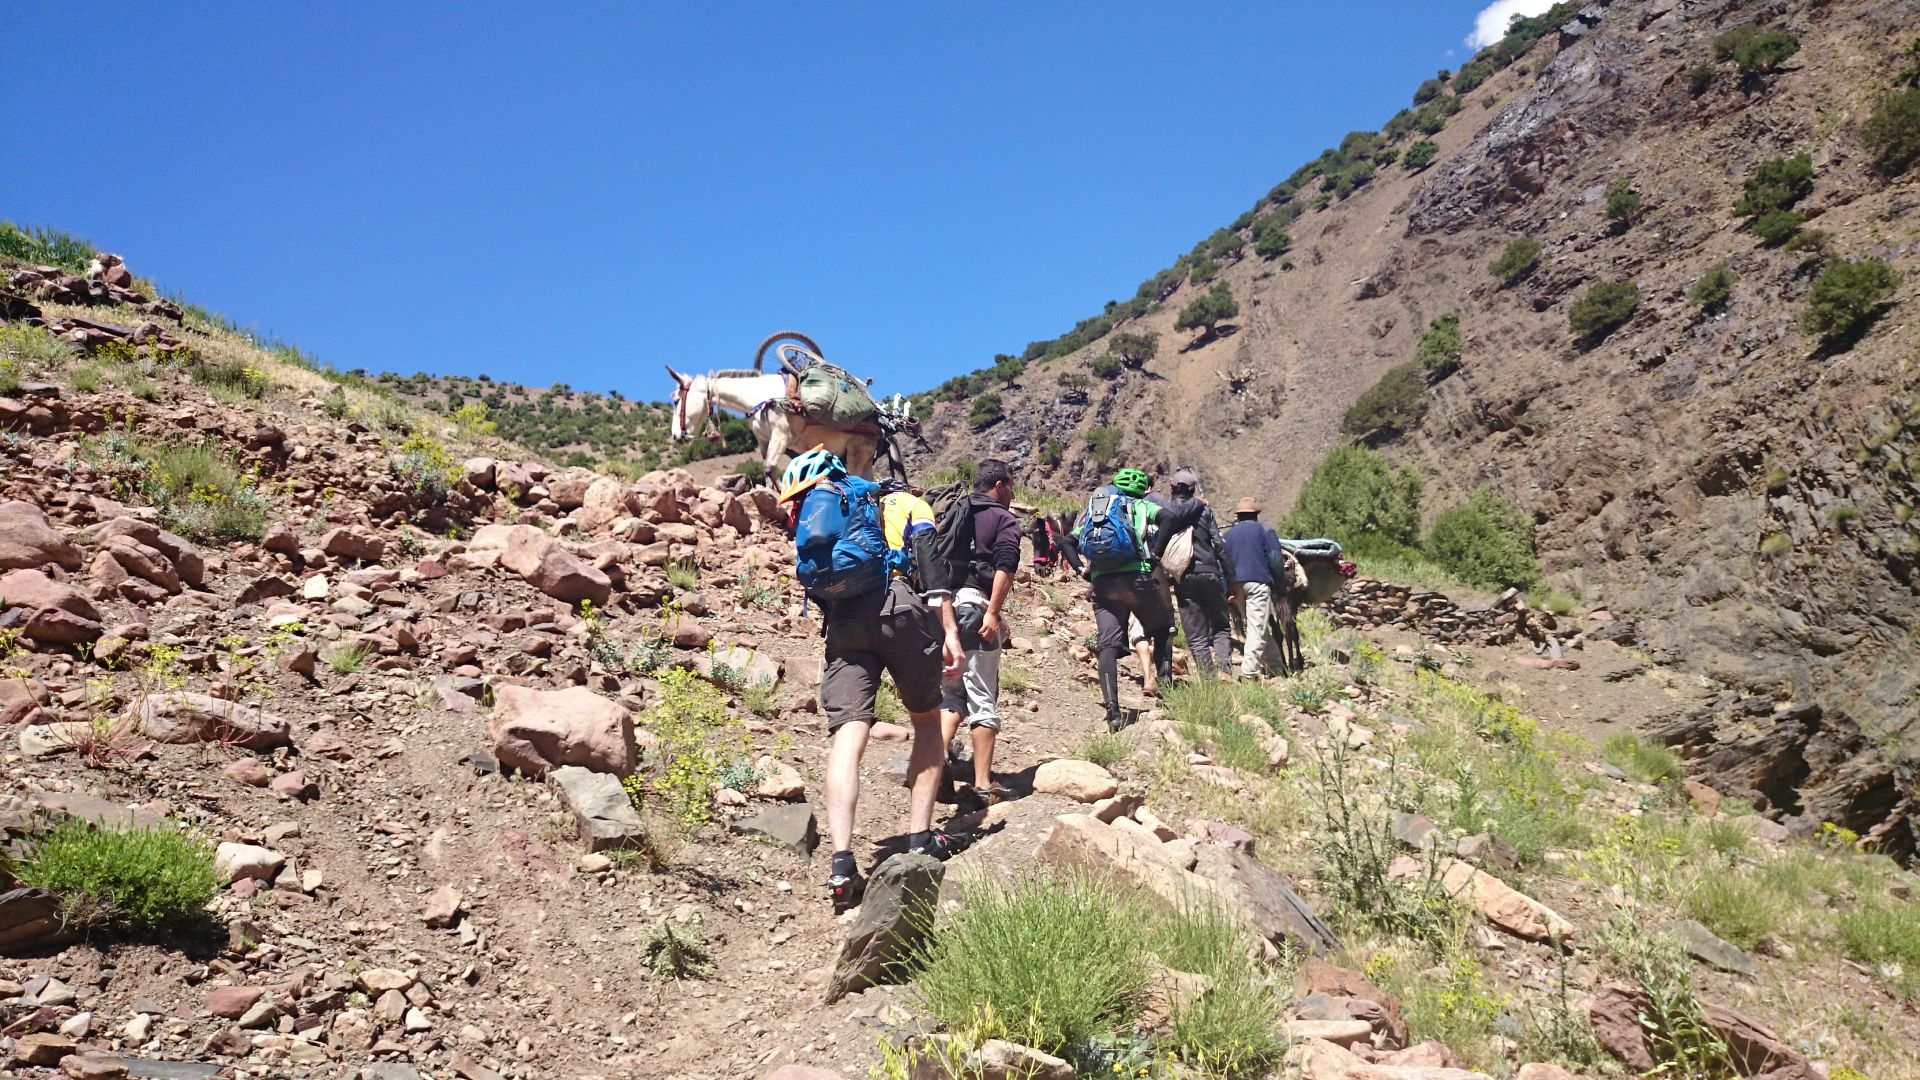 Day 4 - Those  mules sure do carry those bikes better than we could! The climb toward Tizi-n-Rughuelt pass. © Shaun Grey